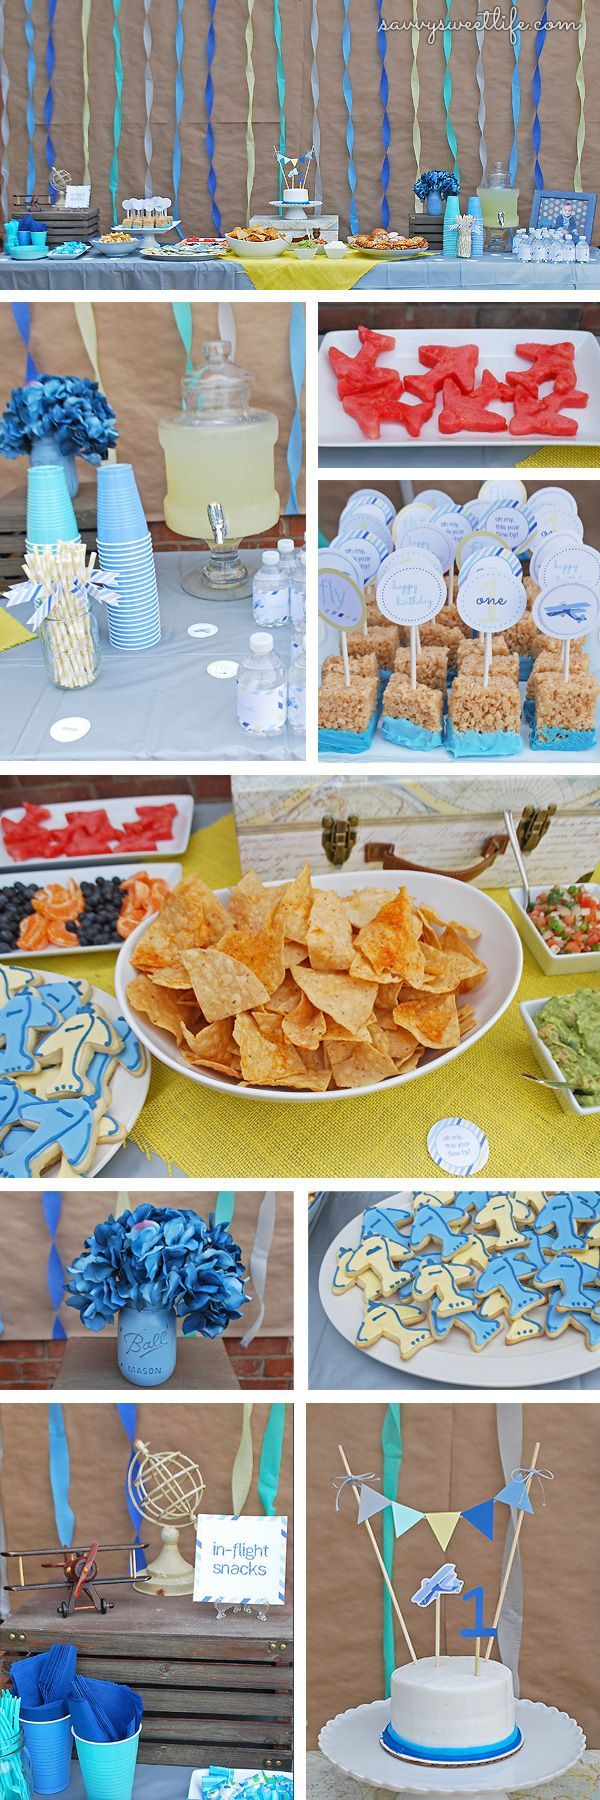 Vintage Airplane First Birthday Party Savvy Sweet Life diy